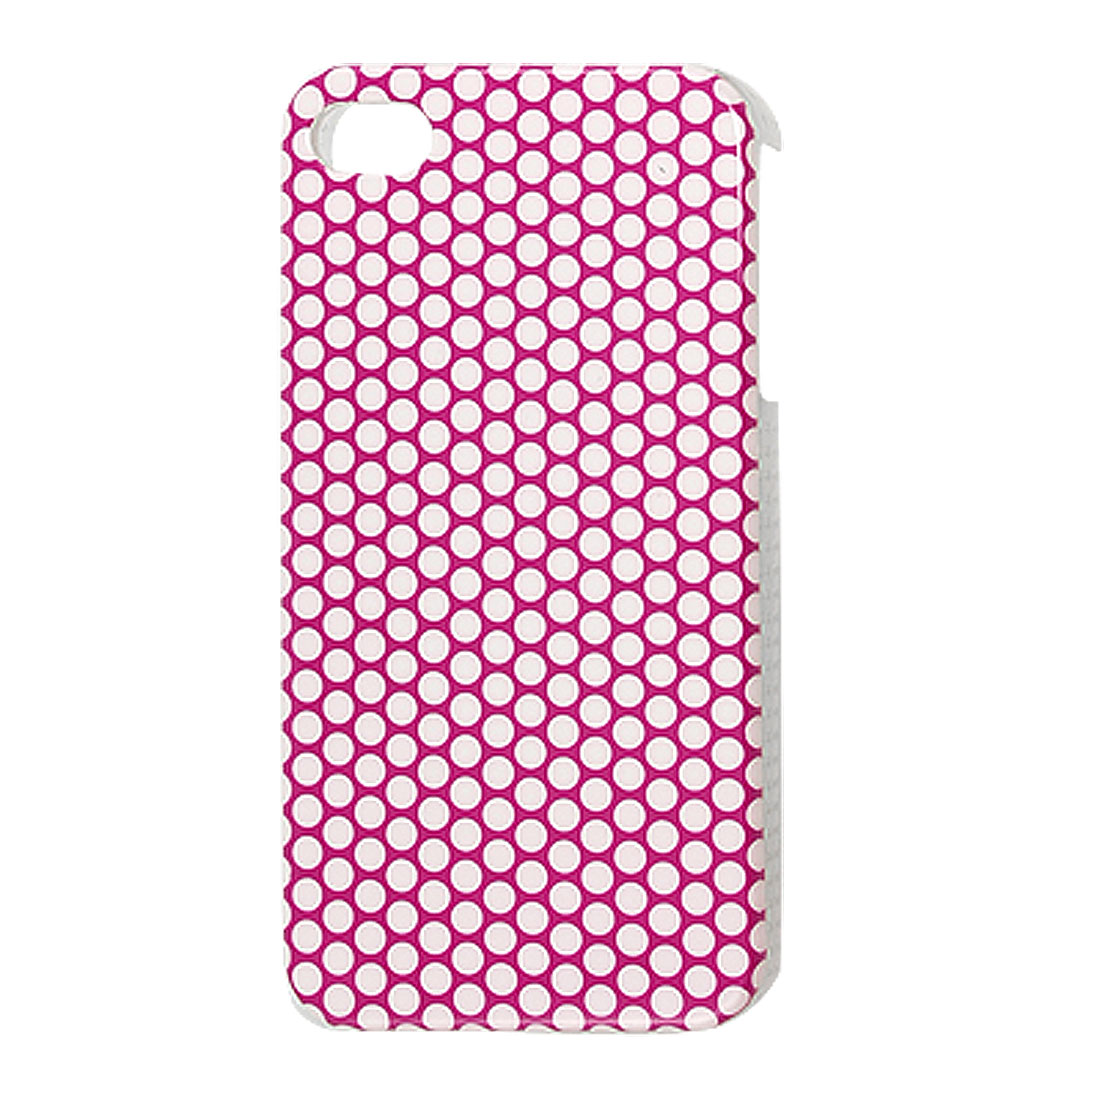 IMD Mini White Dots Decor Fuchsia Plastic Back Case for iPhone 4 4G 4S